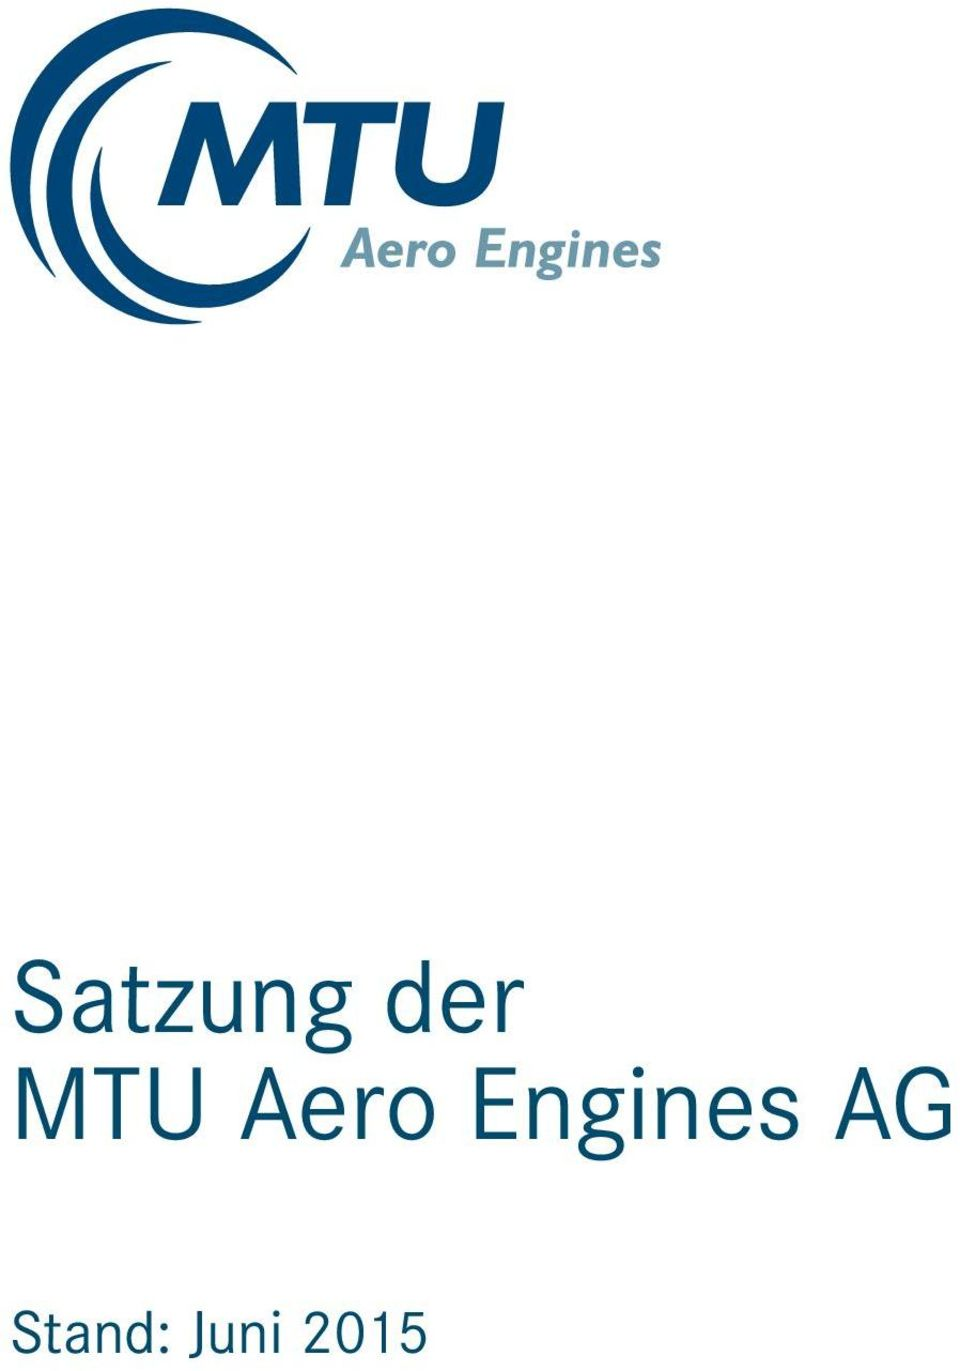 Engines AG